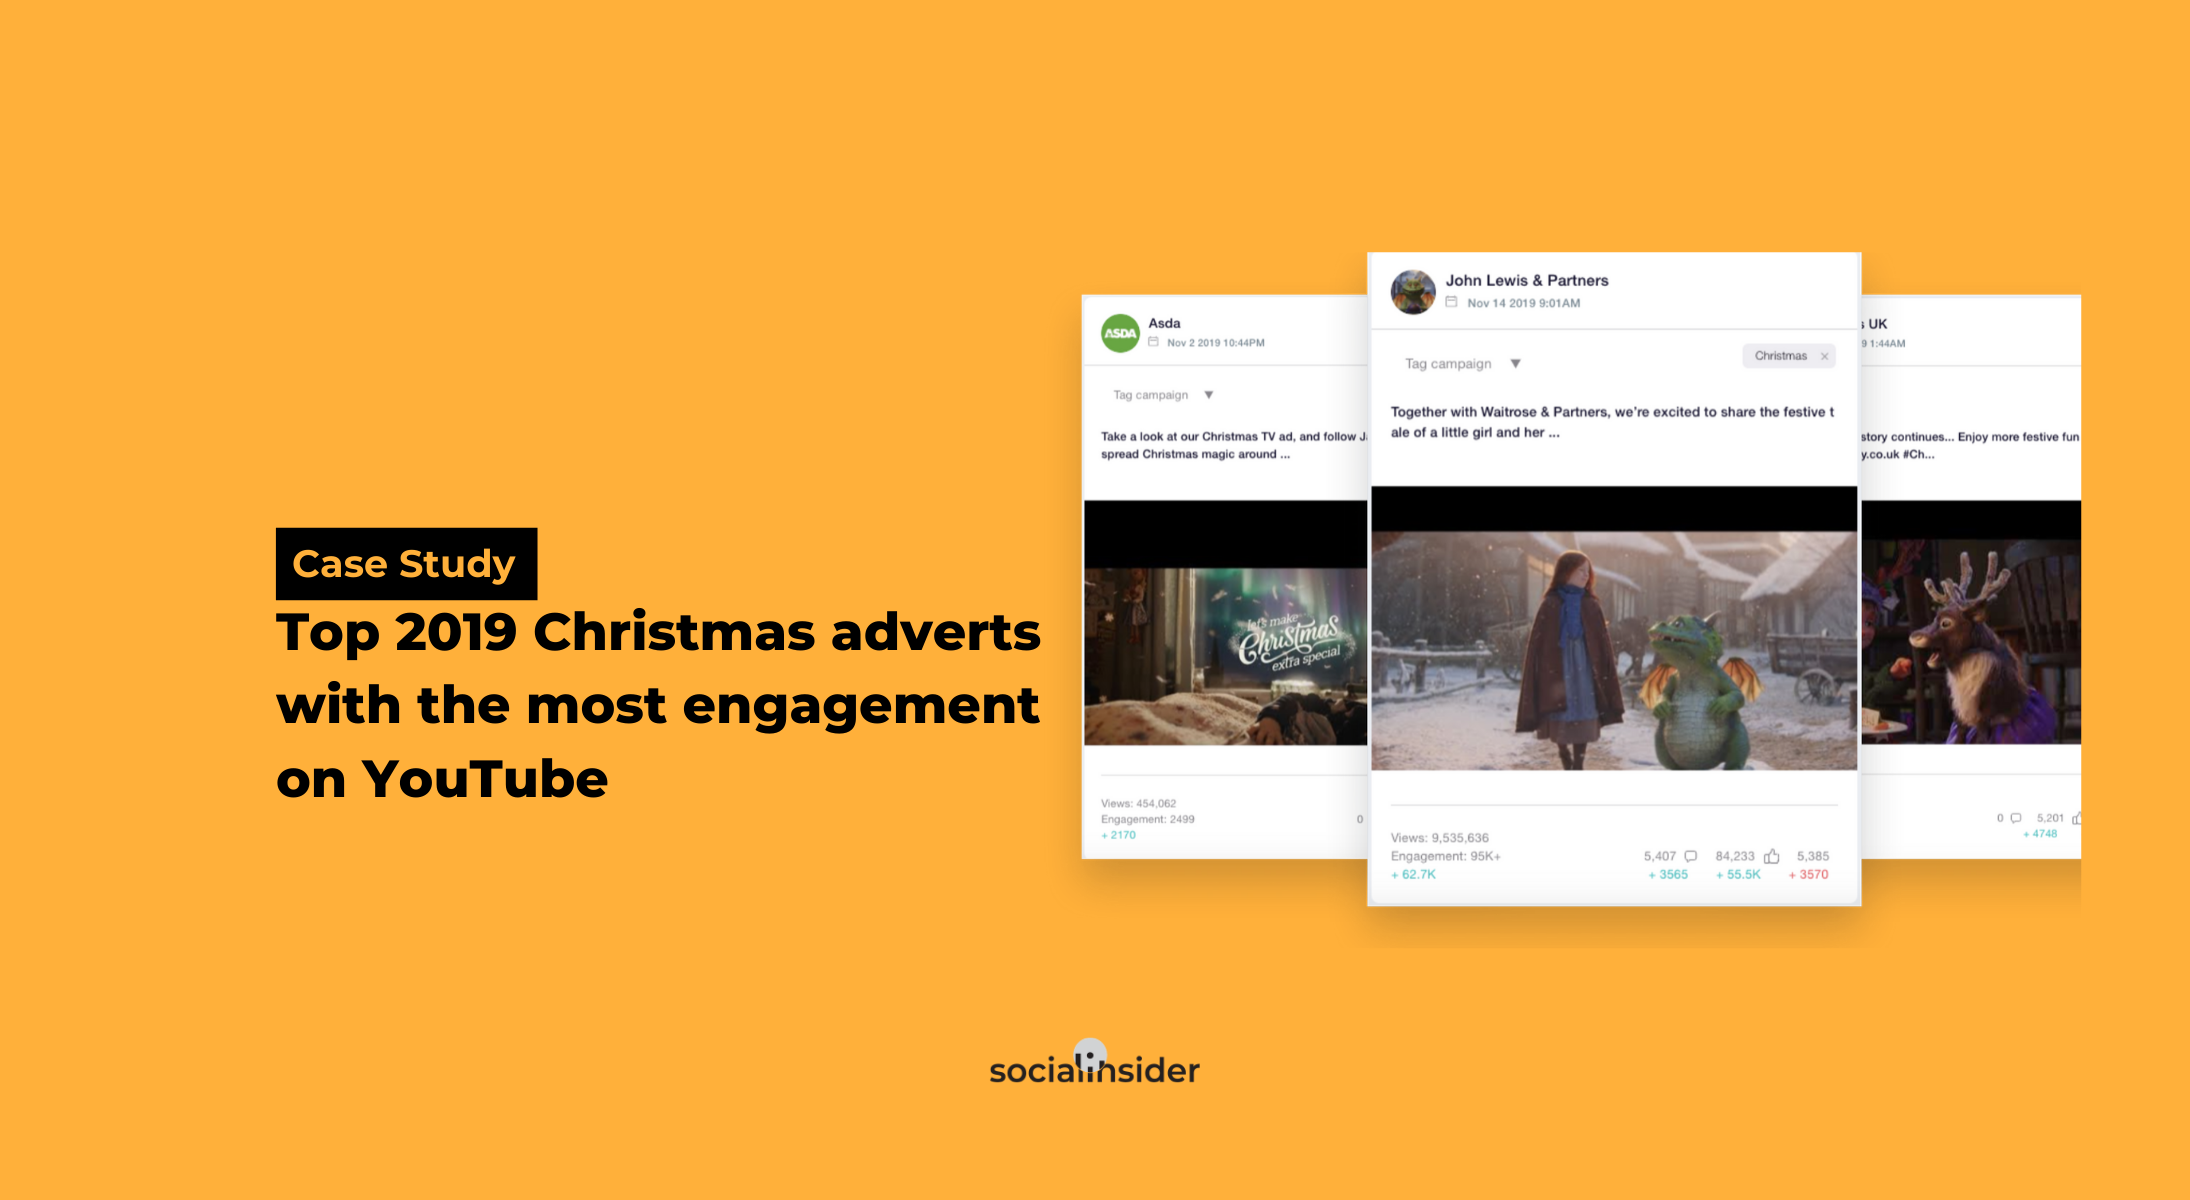 Youtube Asda Christmas Advert 2021 Top 2019 Christmas Adverts With The Most Engagement On Youtube